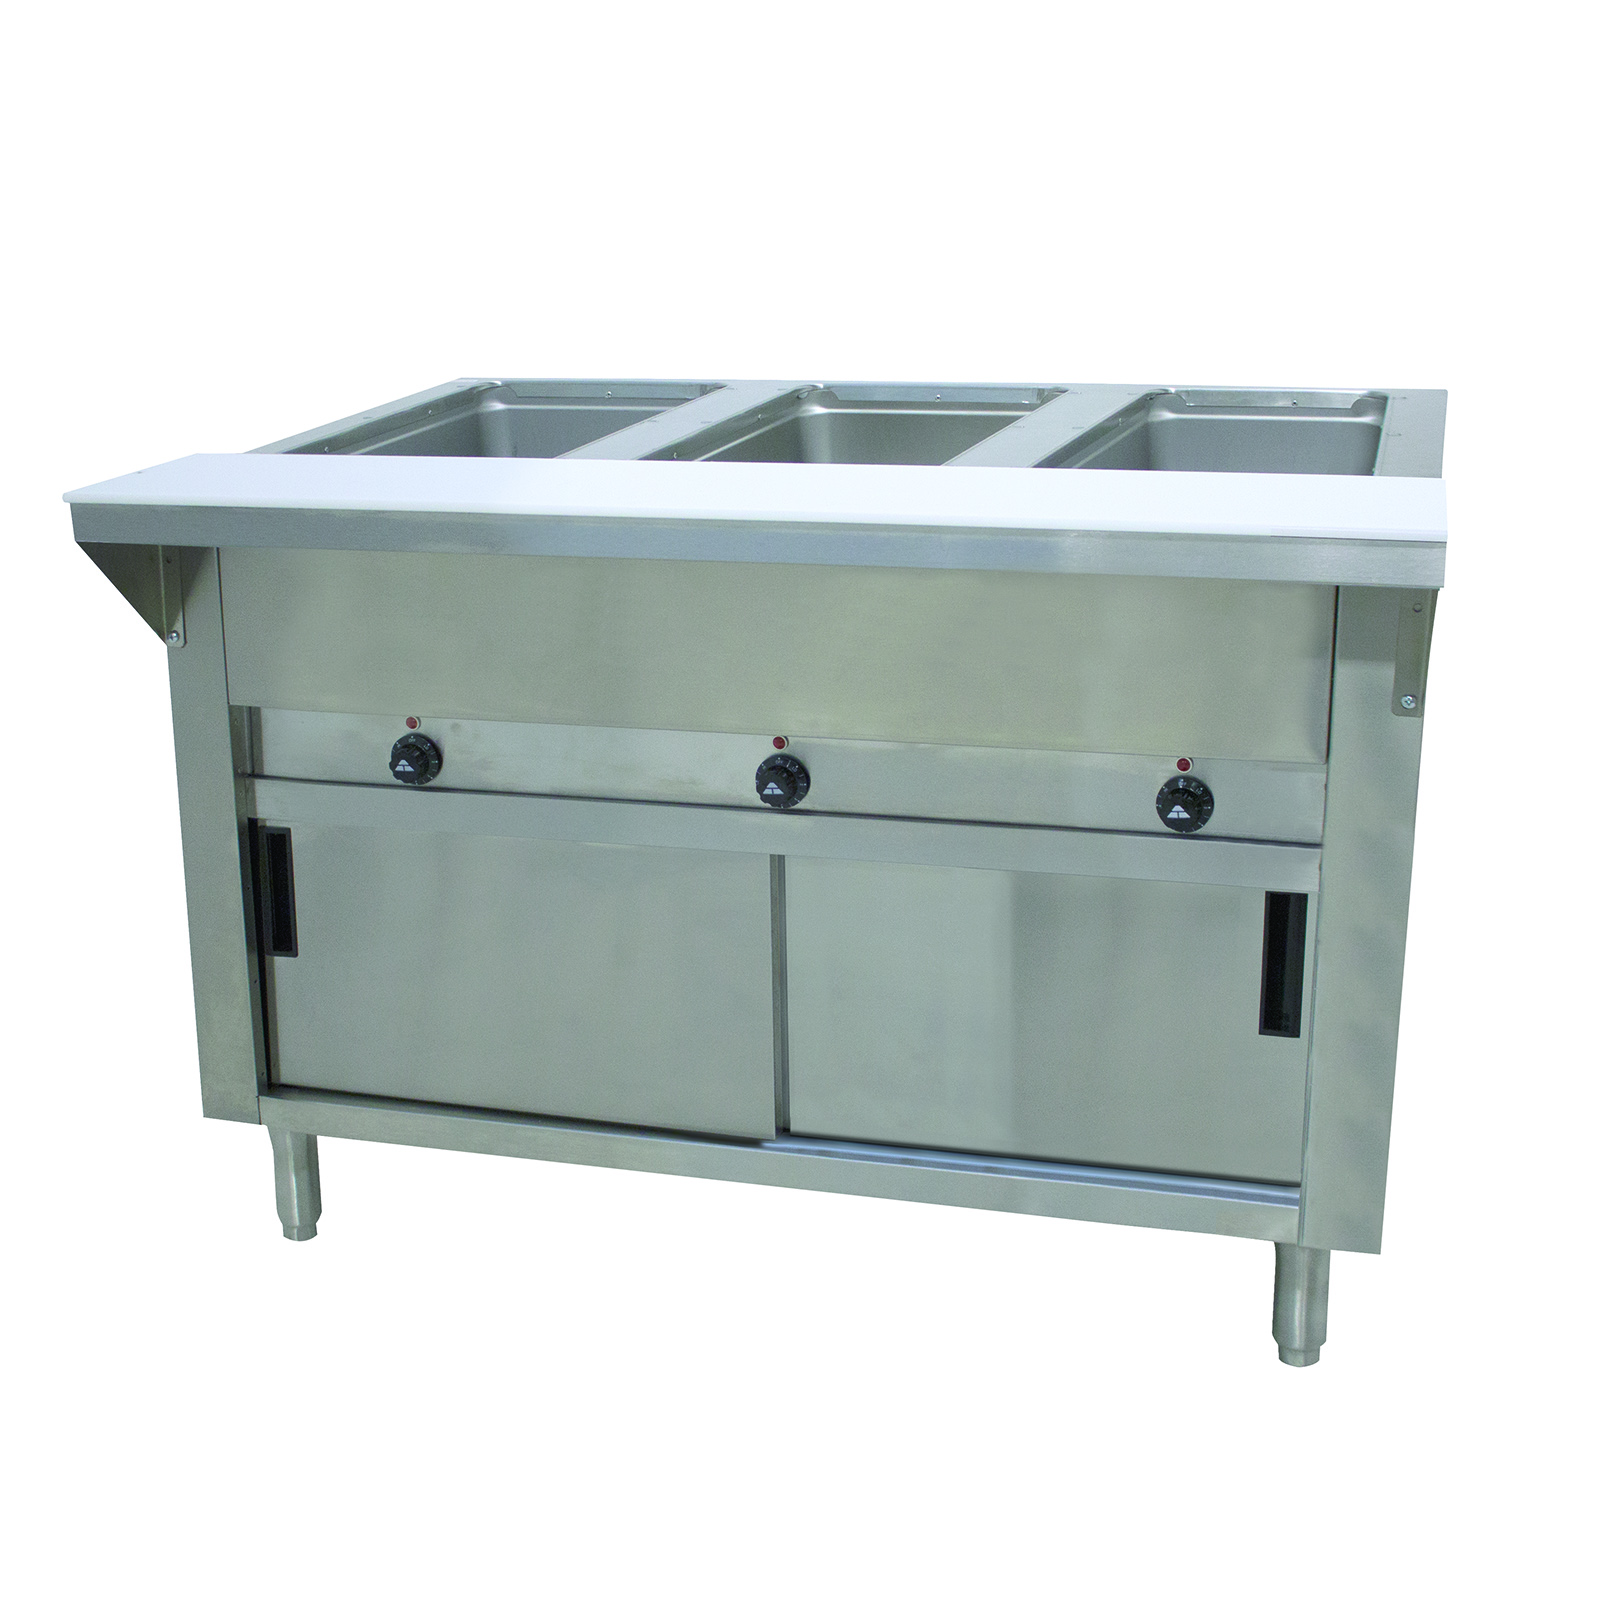 Advance Tabco SW-3E-240-DR serving counter, hot food, electric